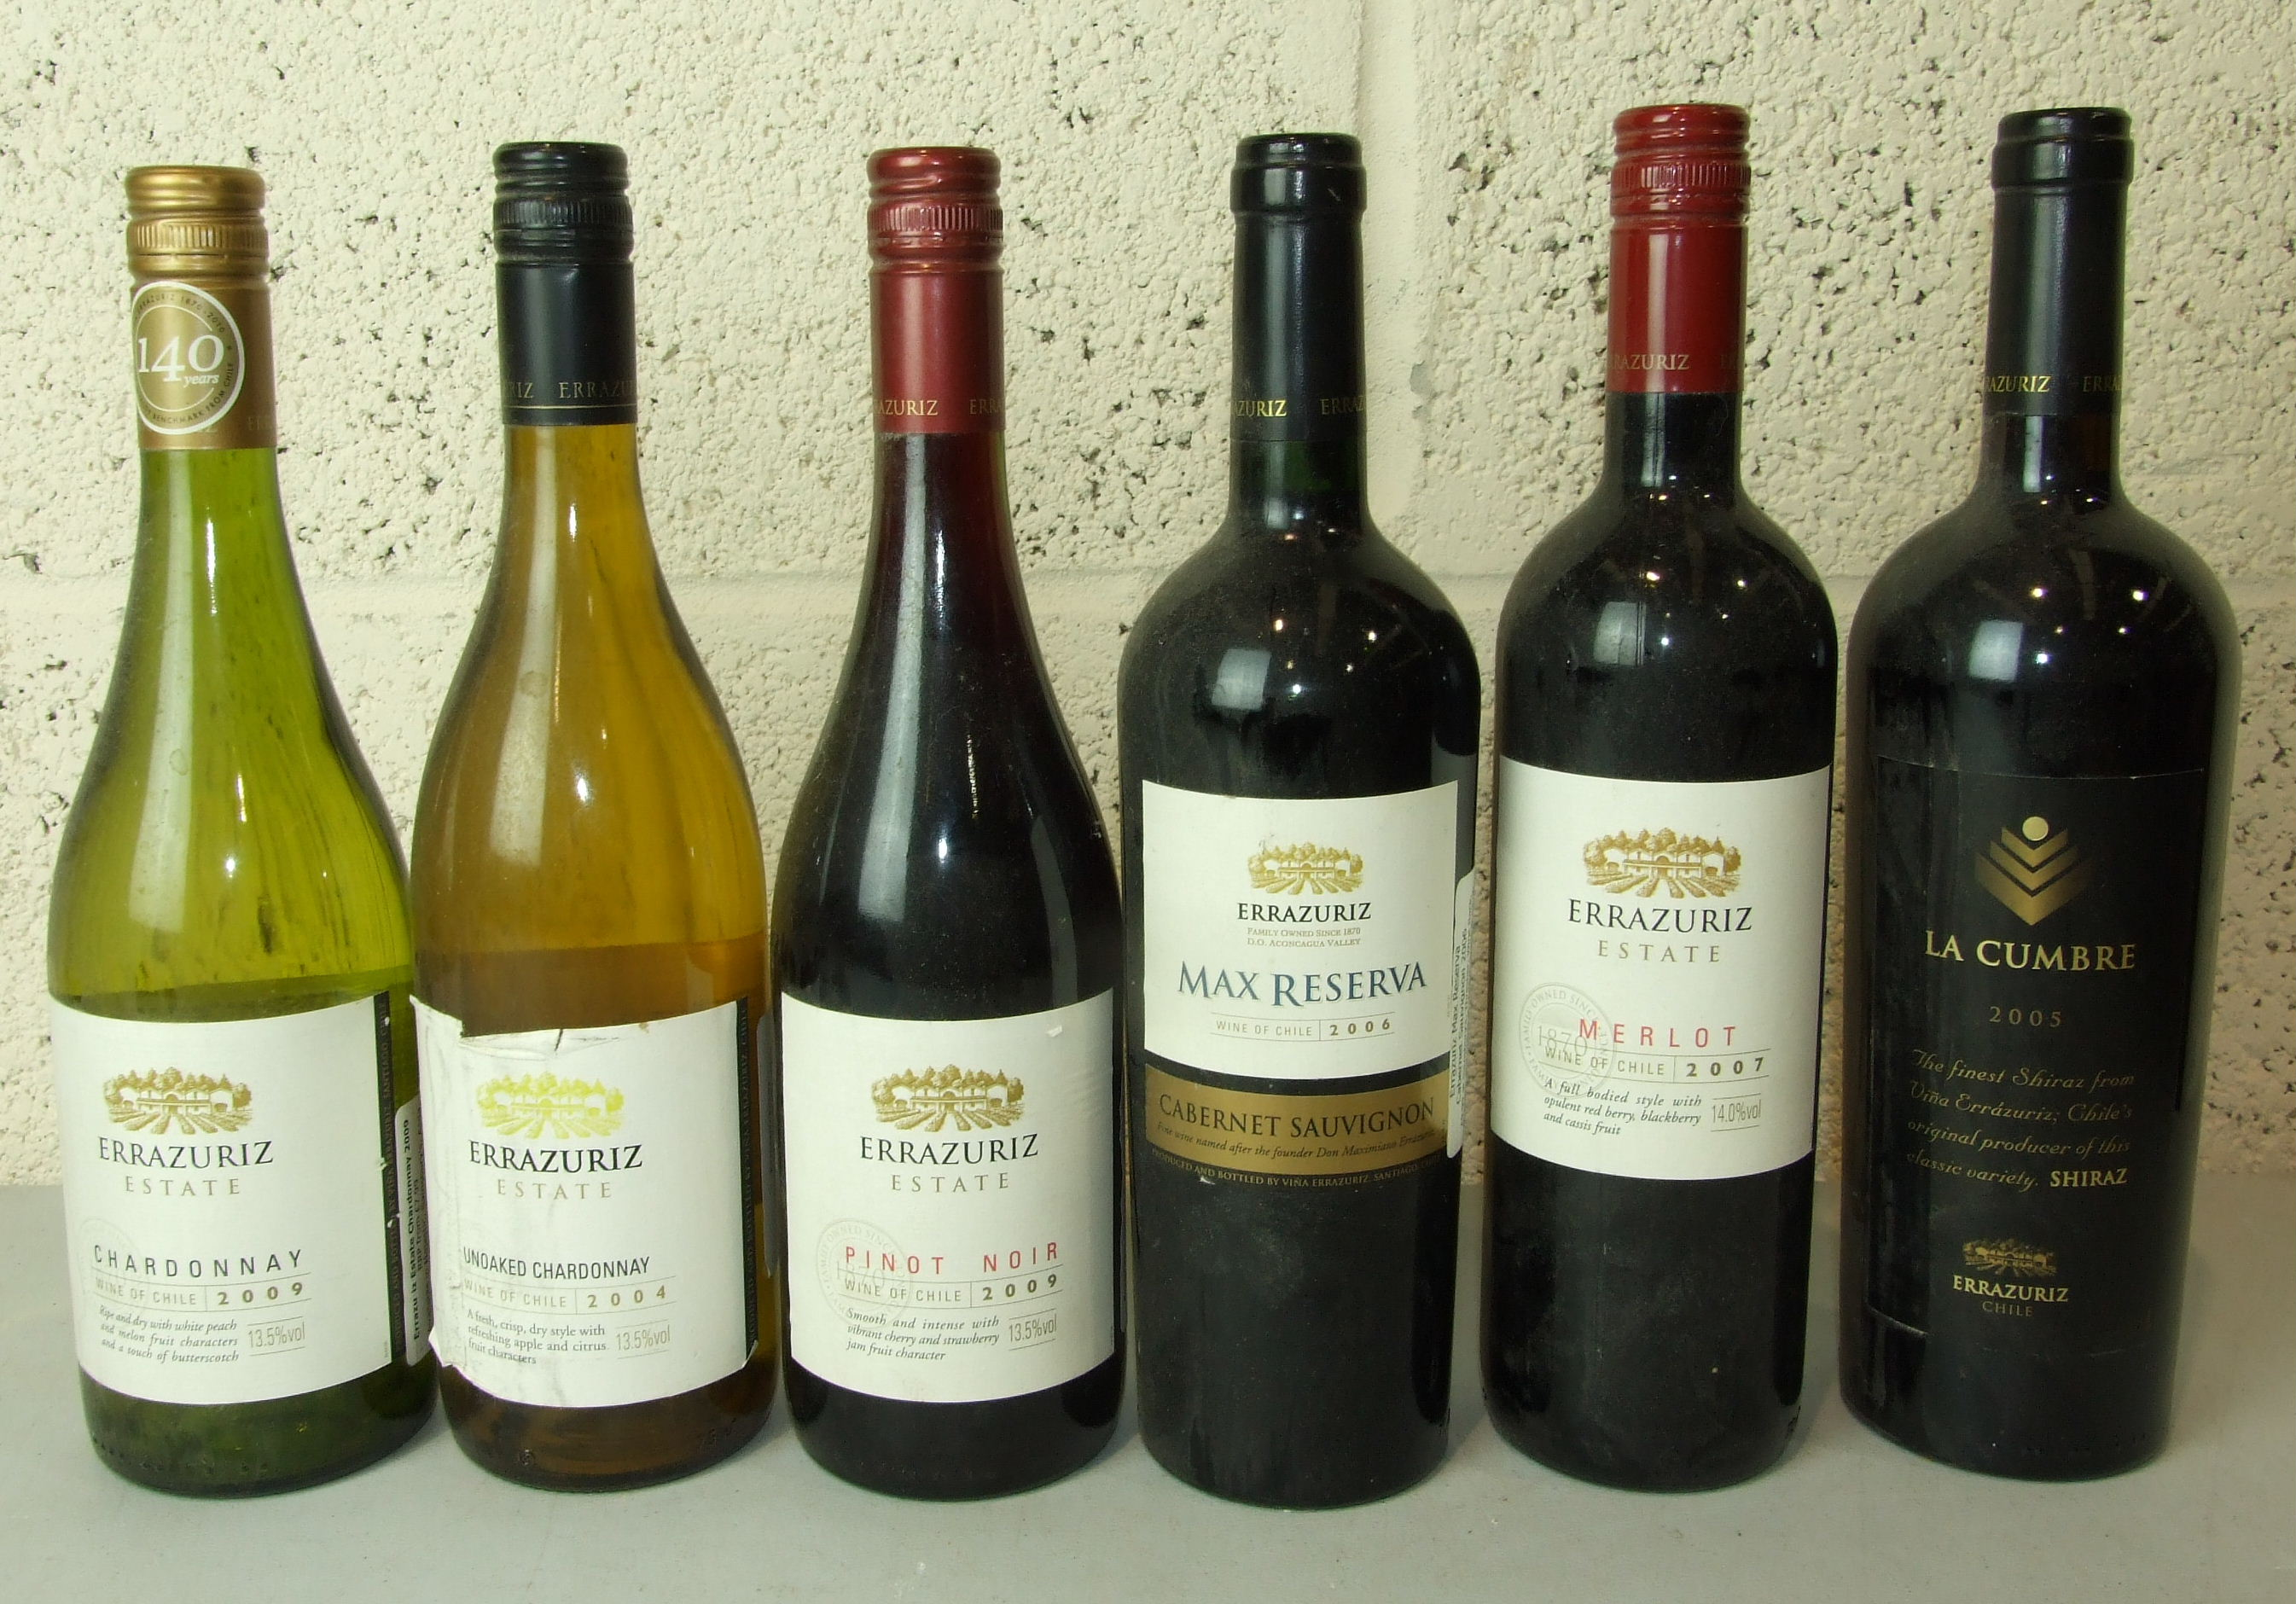 Lot 52 - Chile, mainly Rioja, a mixed lot of vintages, red and white including Errazuriz Cabinet Sauvignon